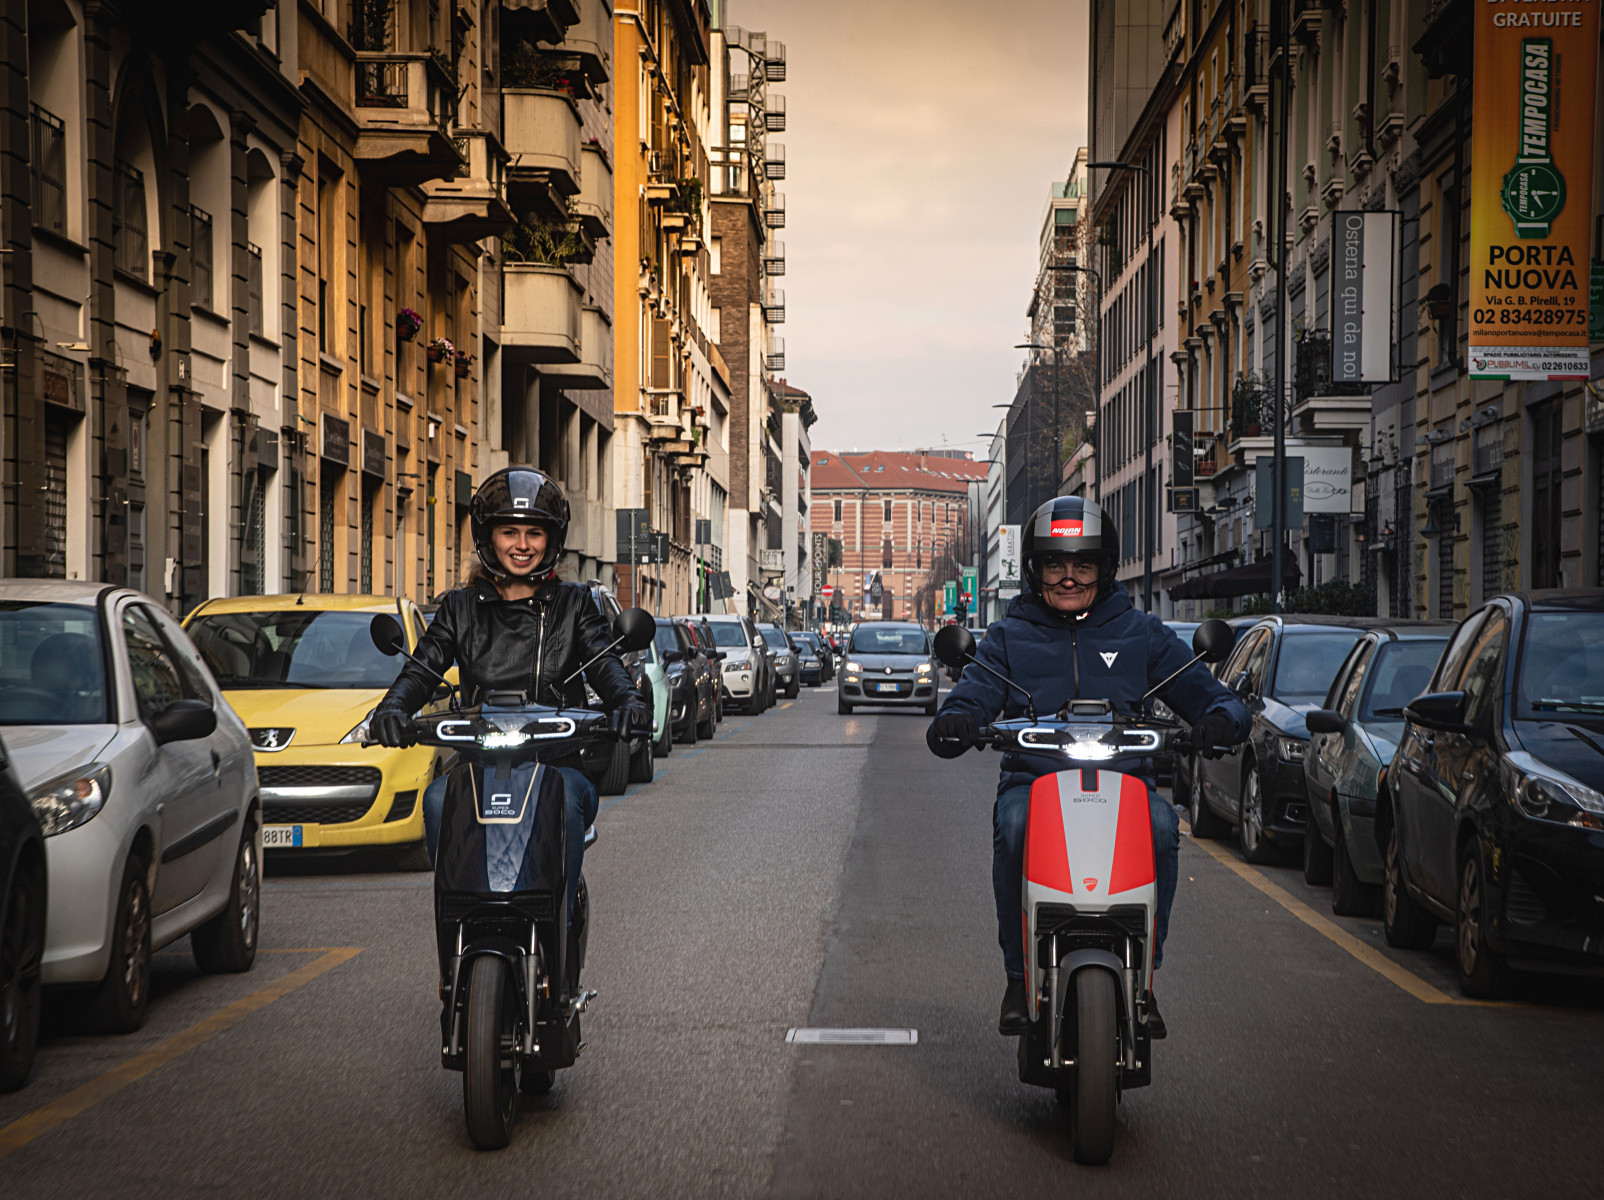 Super Soco CUx electric scooter Ducati Edition being ridden in Milan